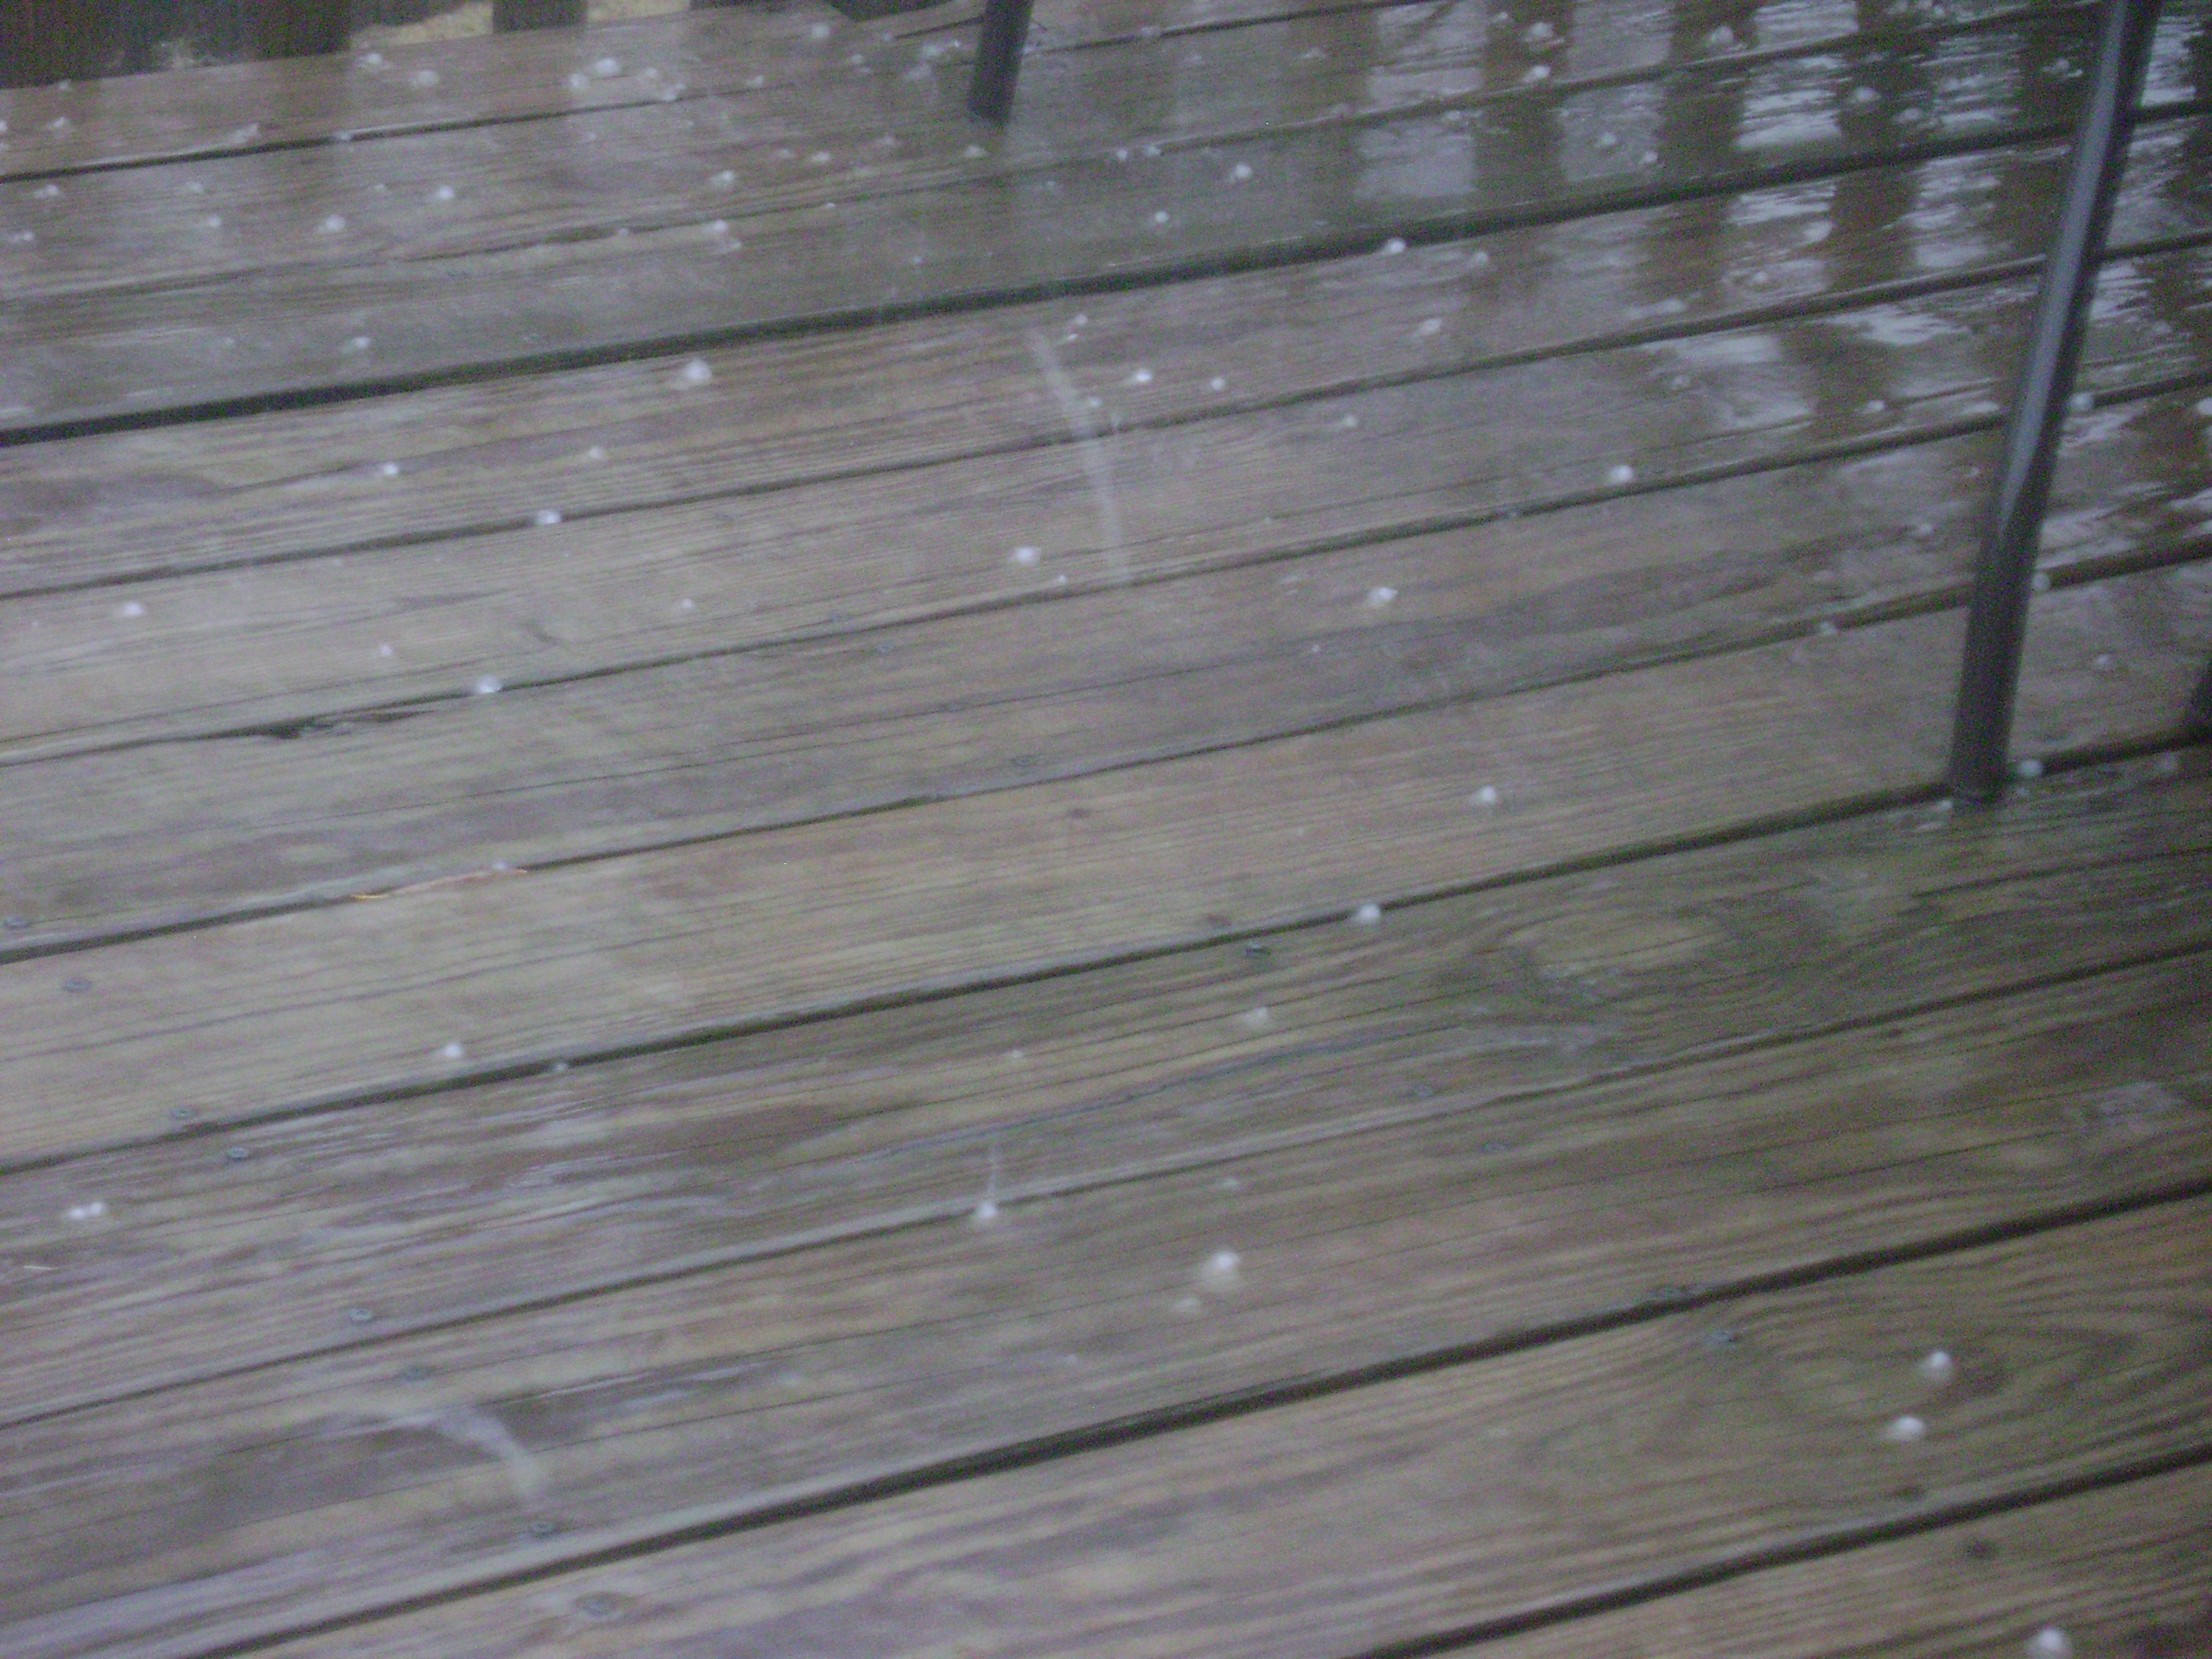 Hail in Johnson, AR